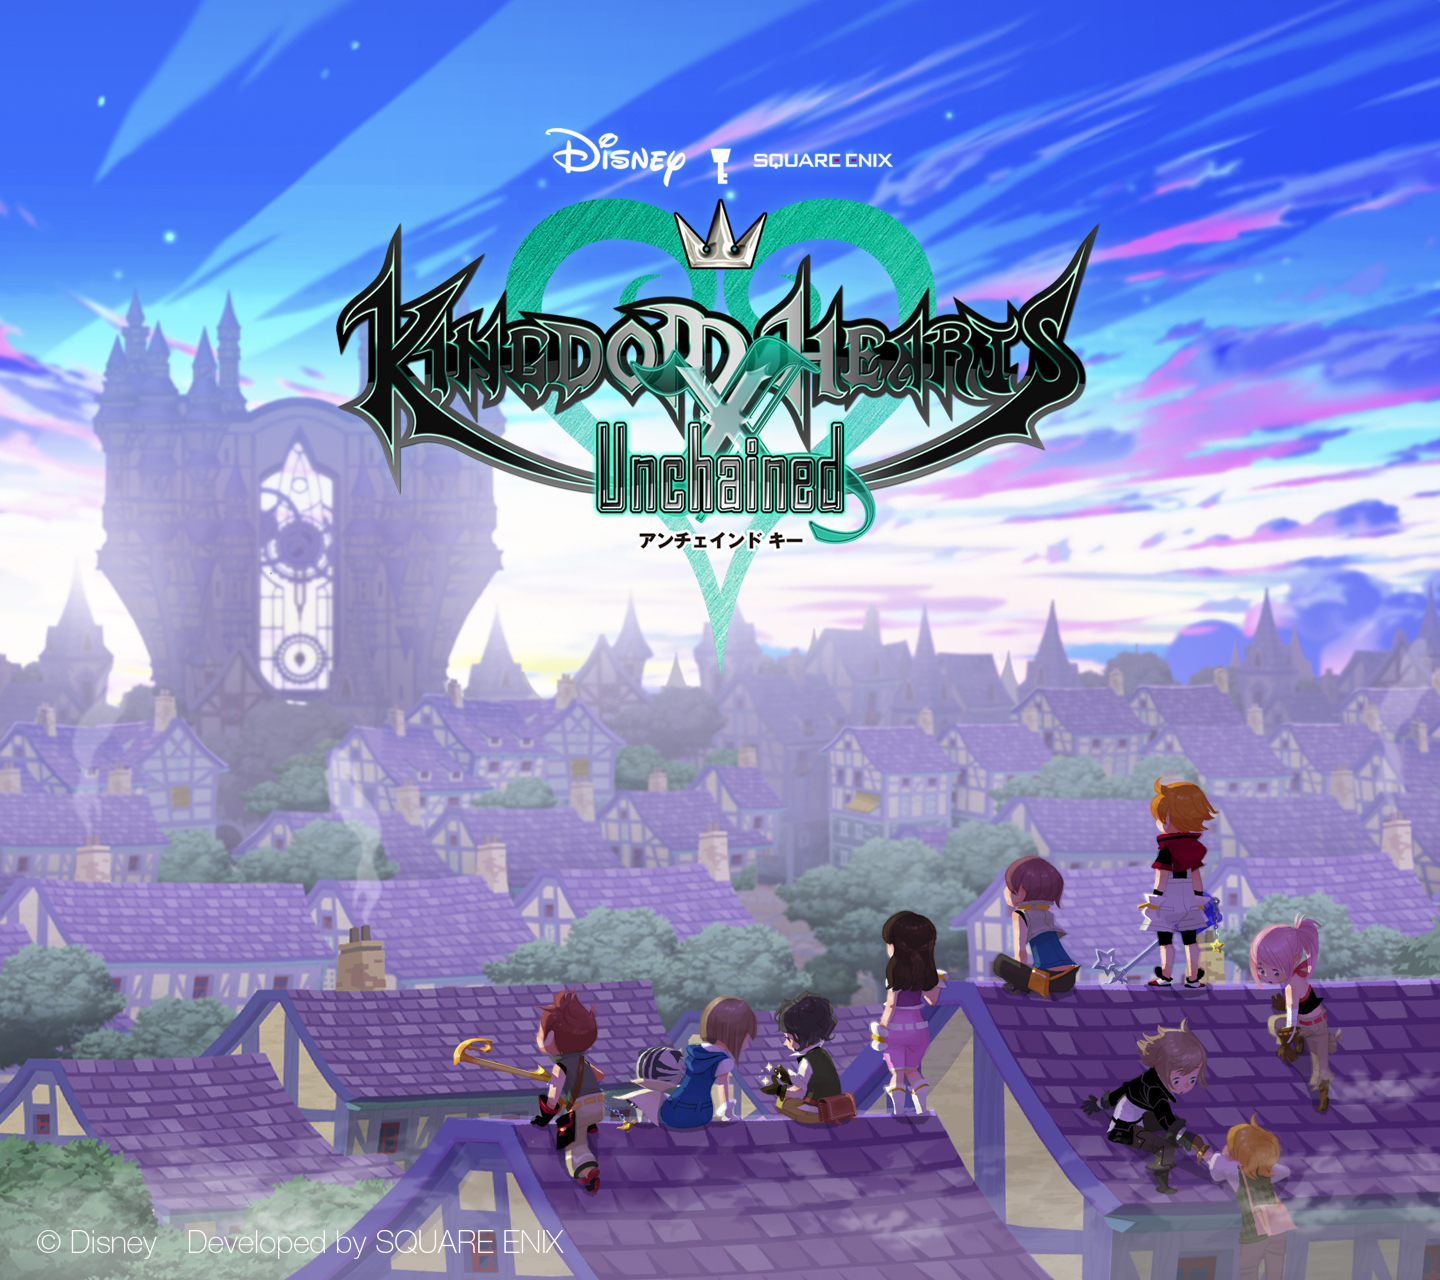 Final Fantasy Wallpaper Iphone X Wallpapers Kingdom Hearts Union Cross Kingdom